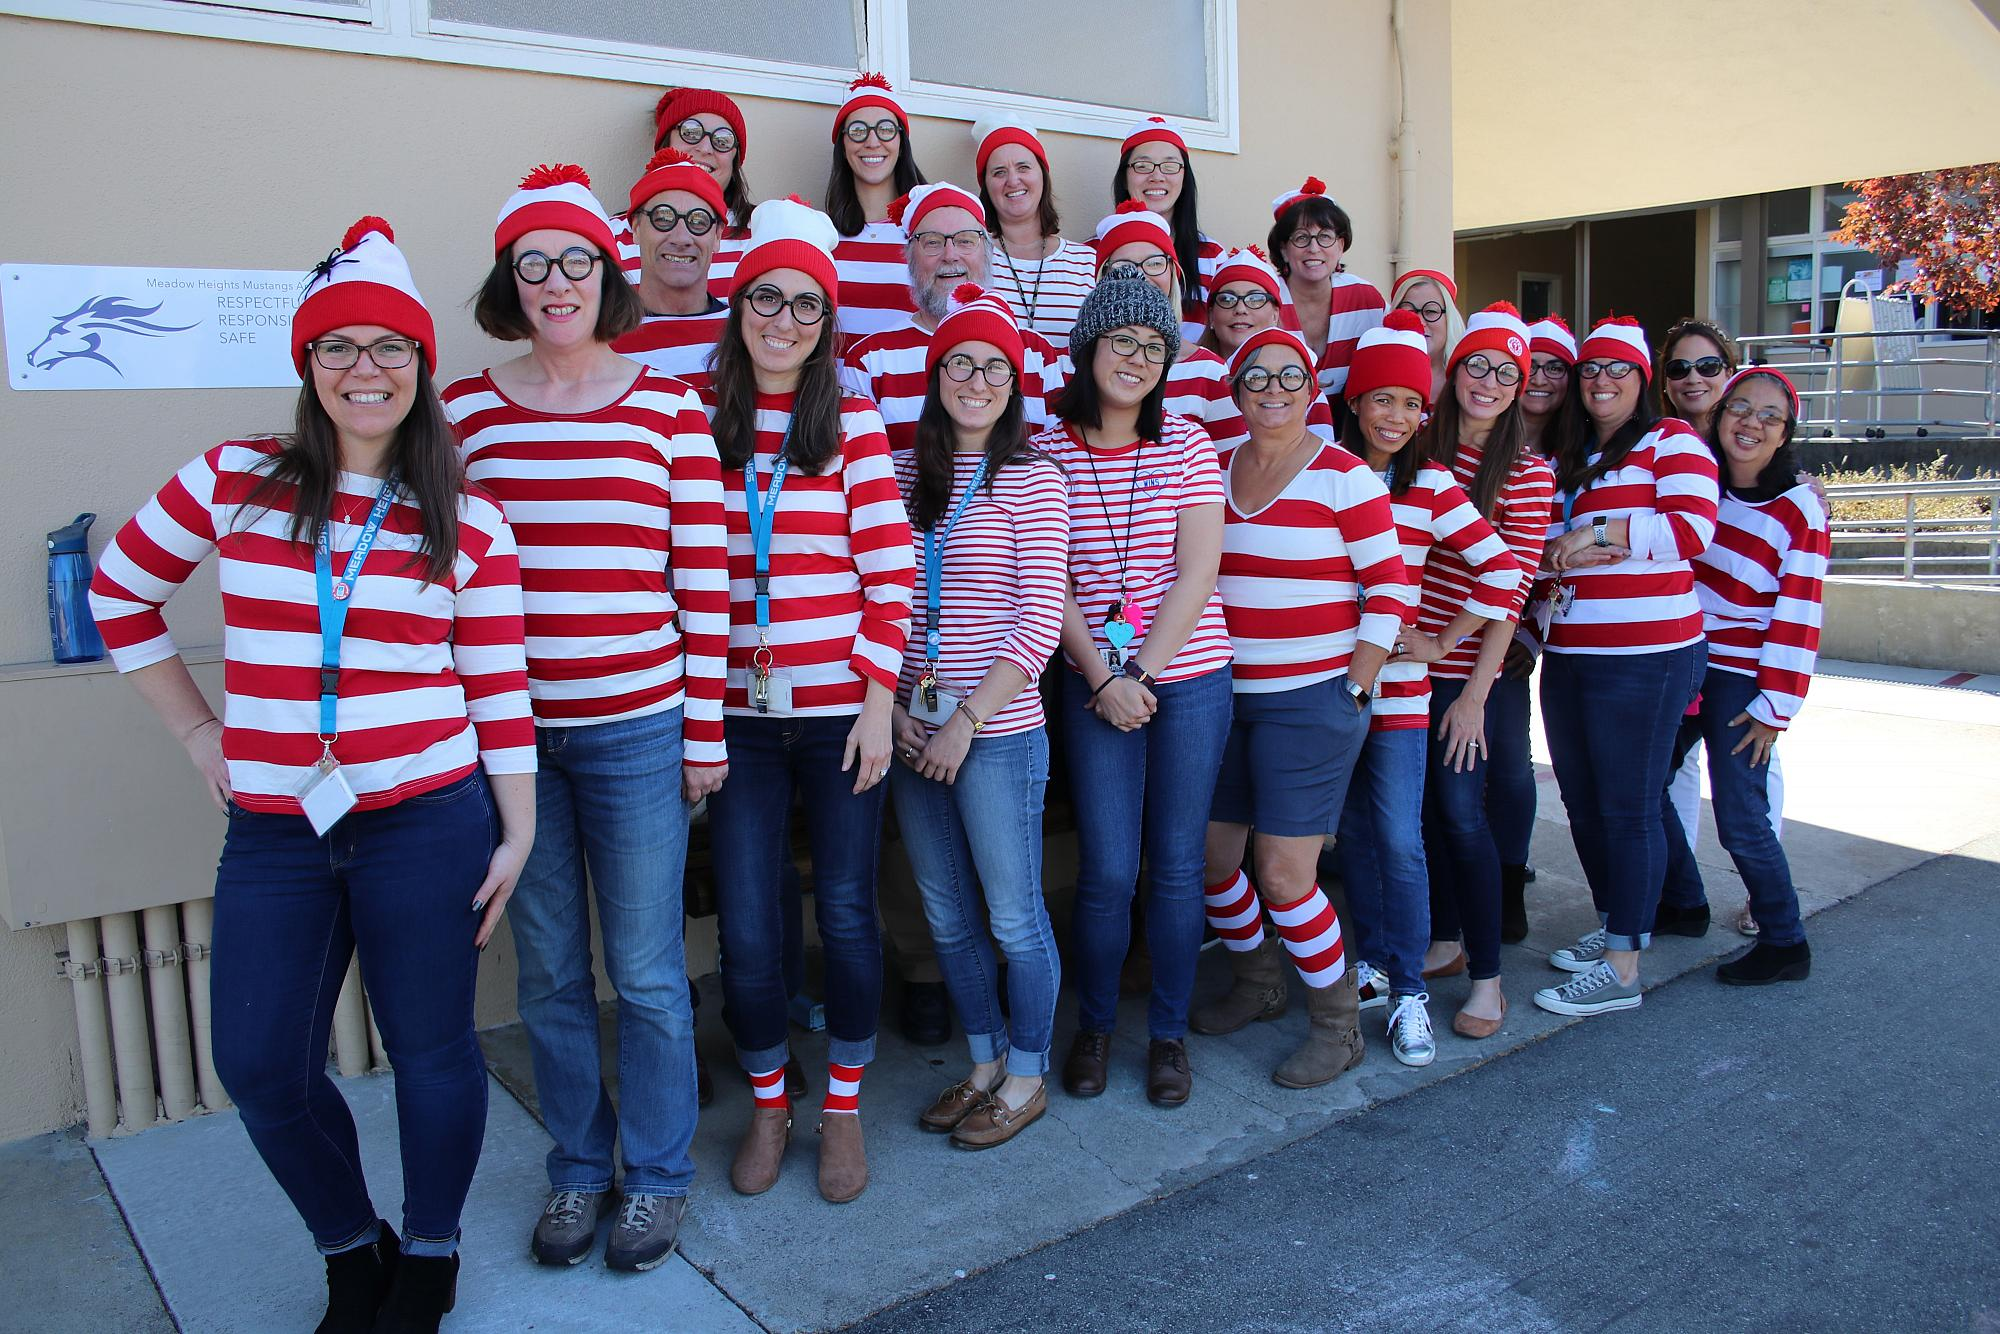 Meadow heights  staff - where is waldo?